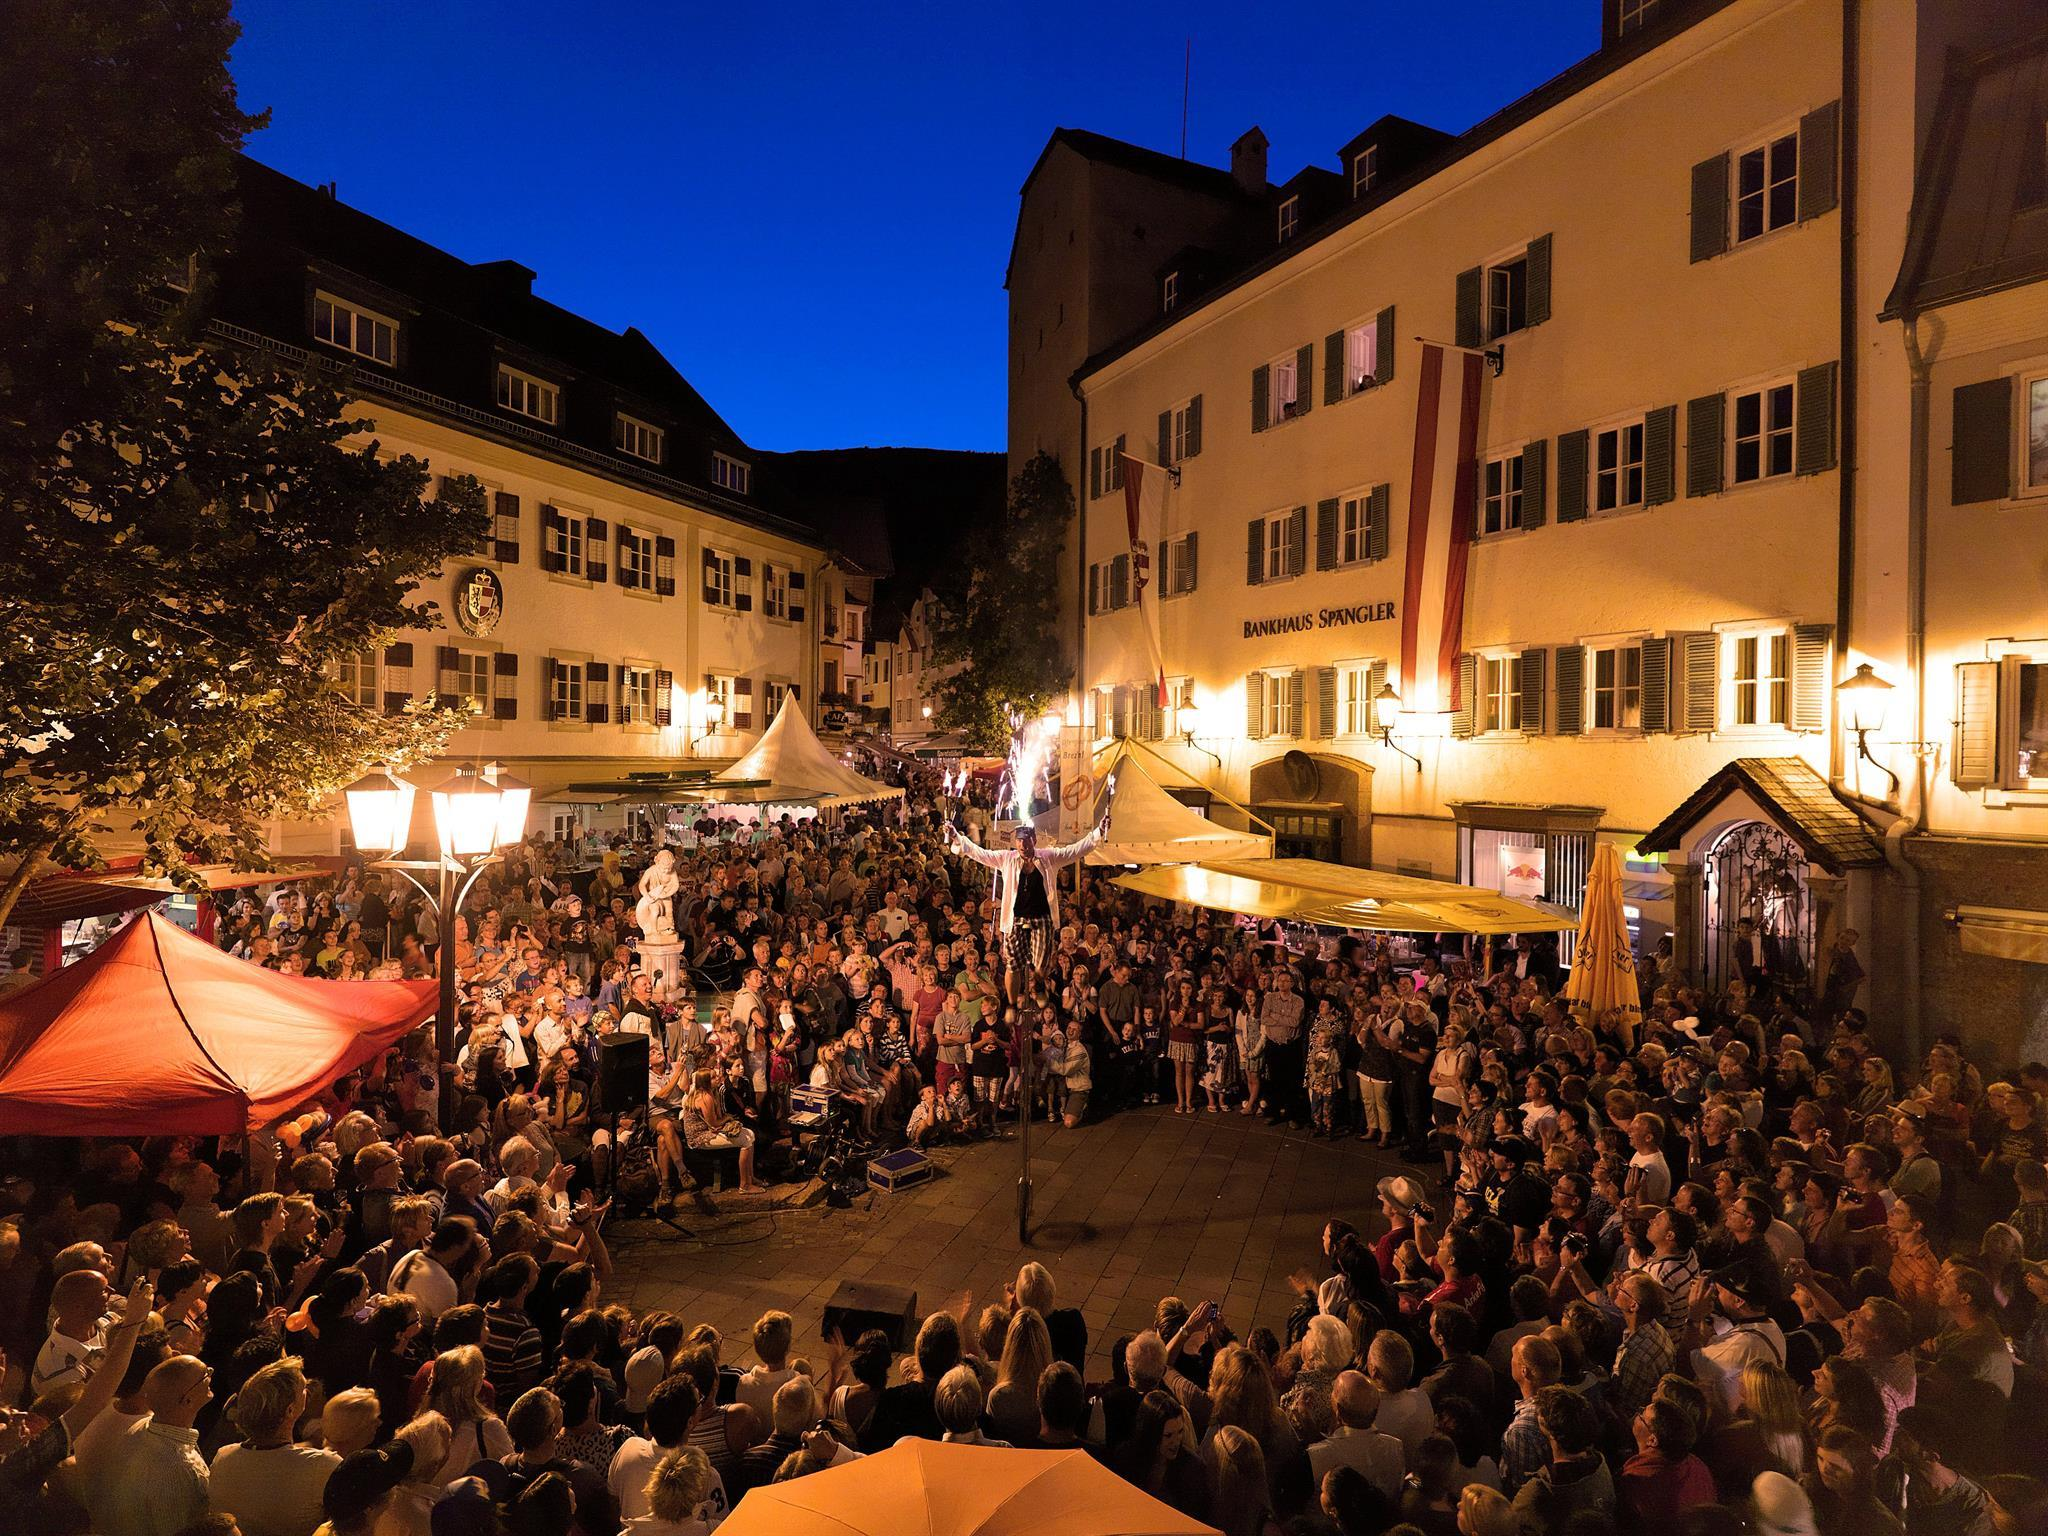 Zell SummerNightFestival - 26/08/2020, from 7:00 PM